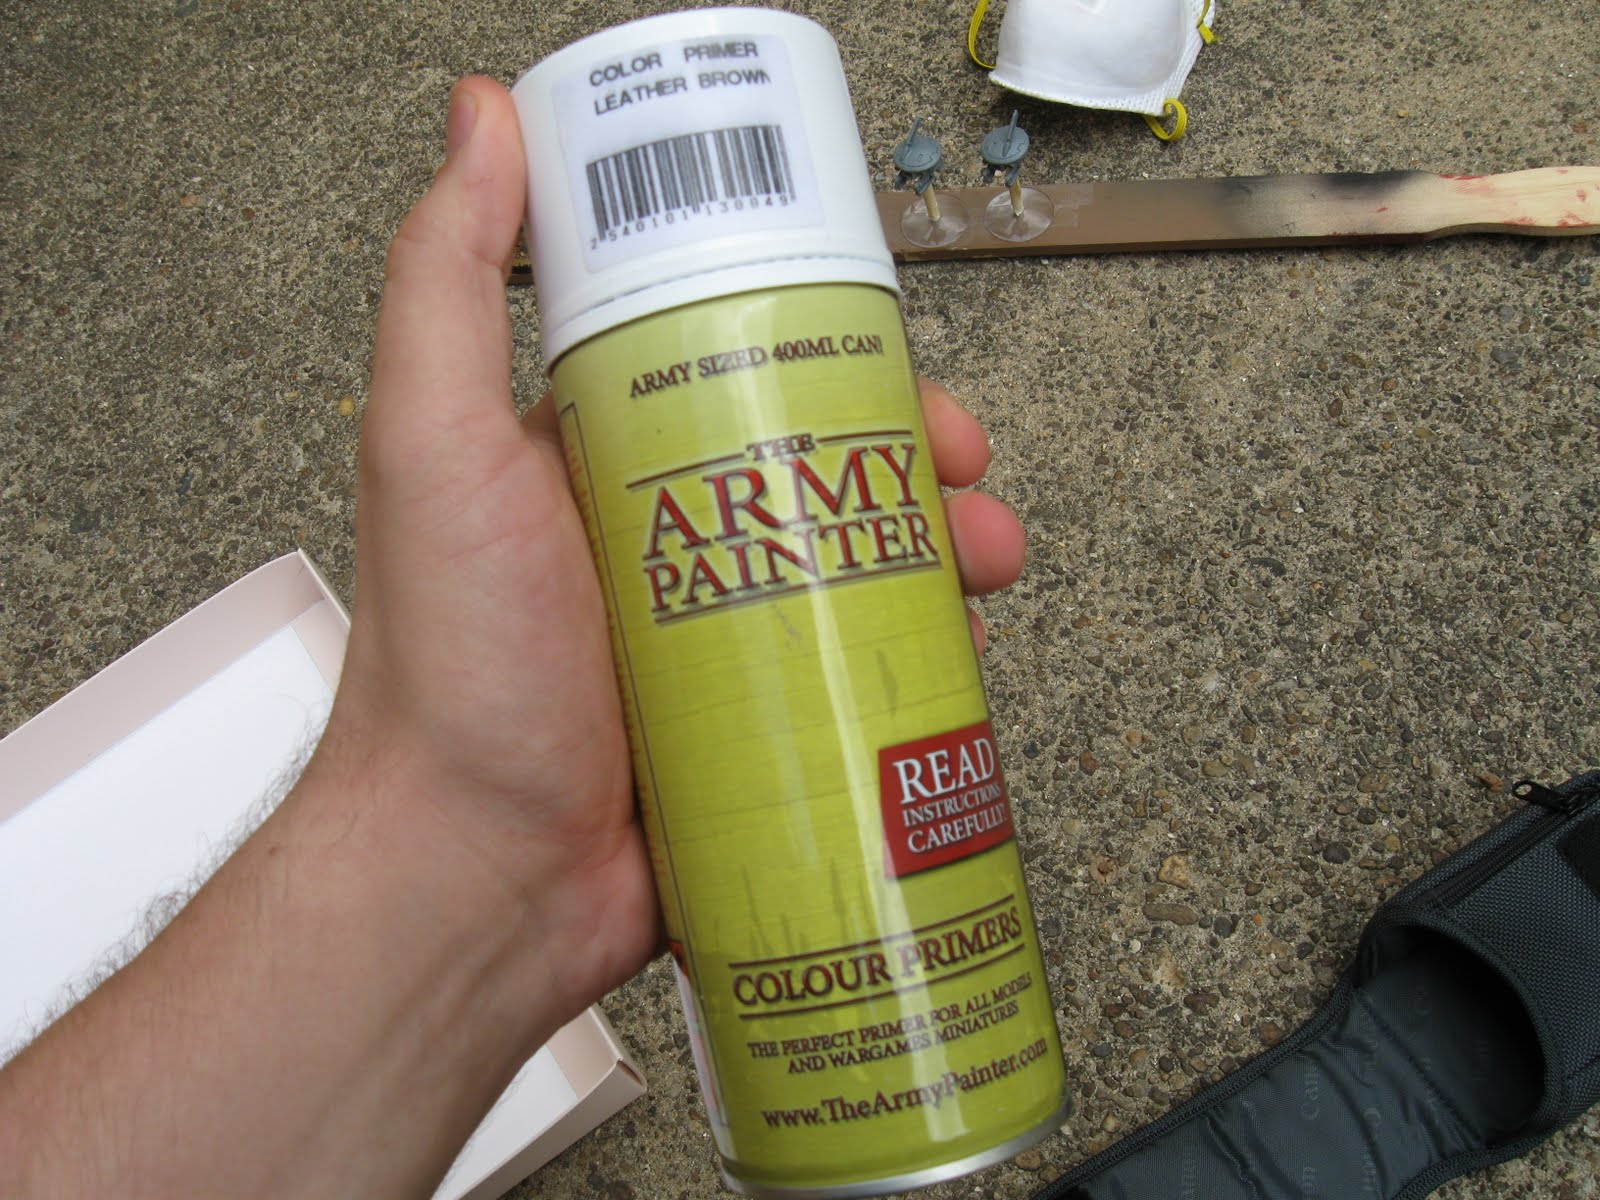 Painting miniatures color master primer - For My Khaki And Green Color Scheme Of My Tau Army I Start By Priming My Models In Leather Brown Color Primer When Using A Color Primer You Want To Make